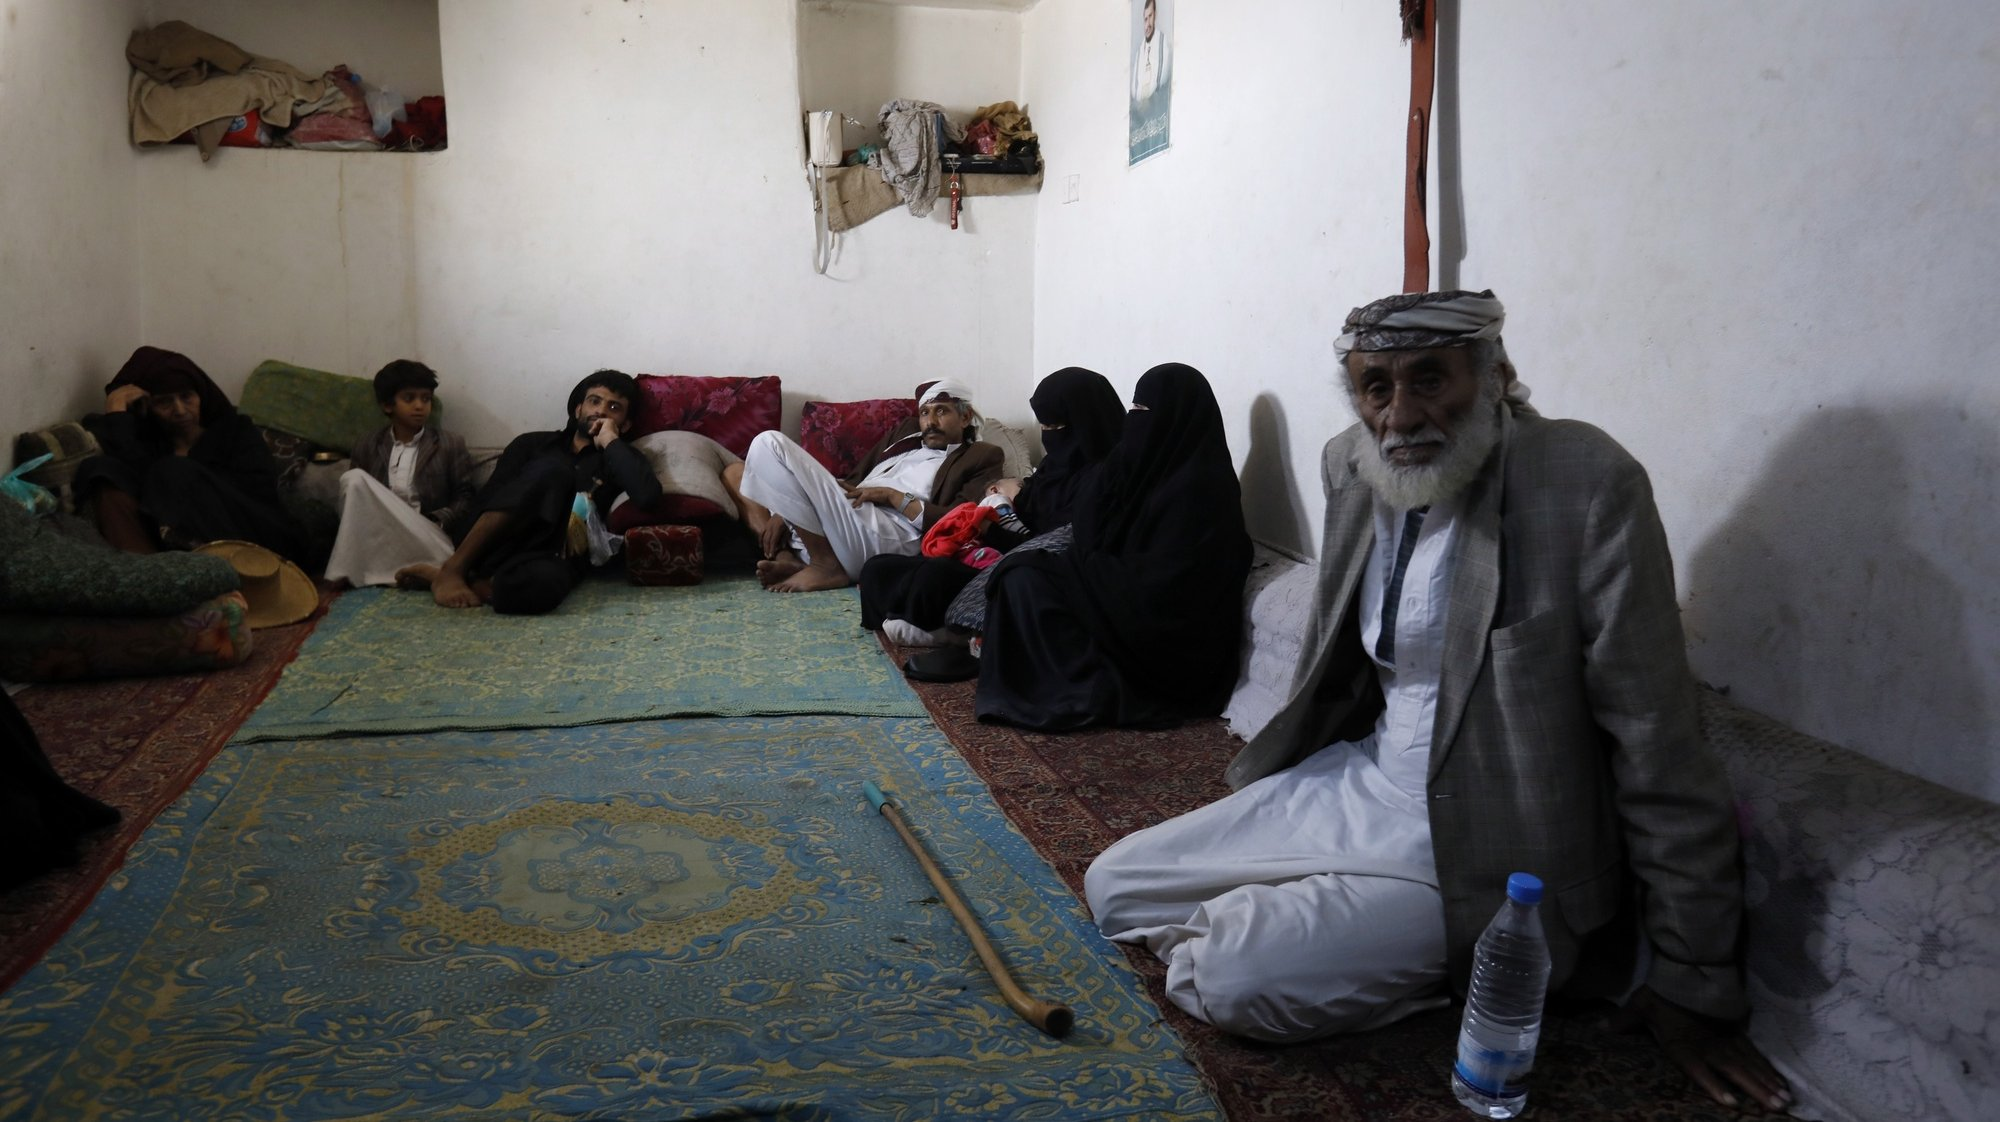 epa08495615 Yemeni displaced Mohammed Ahmed, 77, (R) and his relatives sit in a rental house in Sanaa, Yemen, 18 June 2020 (issued 19 June 2020). He says 'I have been displaced from the city of Haradh, northwestern Yemen, since 2016 due to the war that destroyed homes and roads. We displaced to Sanaa, leaving our properties there. We had no choice but to do so. We have no income except what we earn from collecting and selling plastic items. We receive a food ration from the World Food Programme once in every two months. It is not enough for a family of eight'. World Refugee Day is marked annually on 20 June. According to the UNHCR, more and more refugees today live in urban settings outside refugee camps. Some crises have lasted so long that the tent camps became built-up urban areas. While some refugees depend on international help through NGOs, others start a new life, changing everything from occupation, to social status, to adapt to their new realities.  EPA/YAHYA ARHAB  ATTENTION: This Image is part of a PHOTO SET